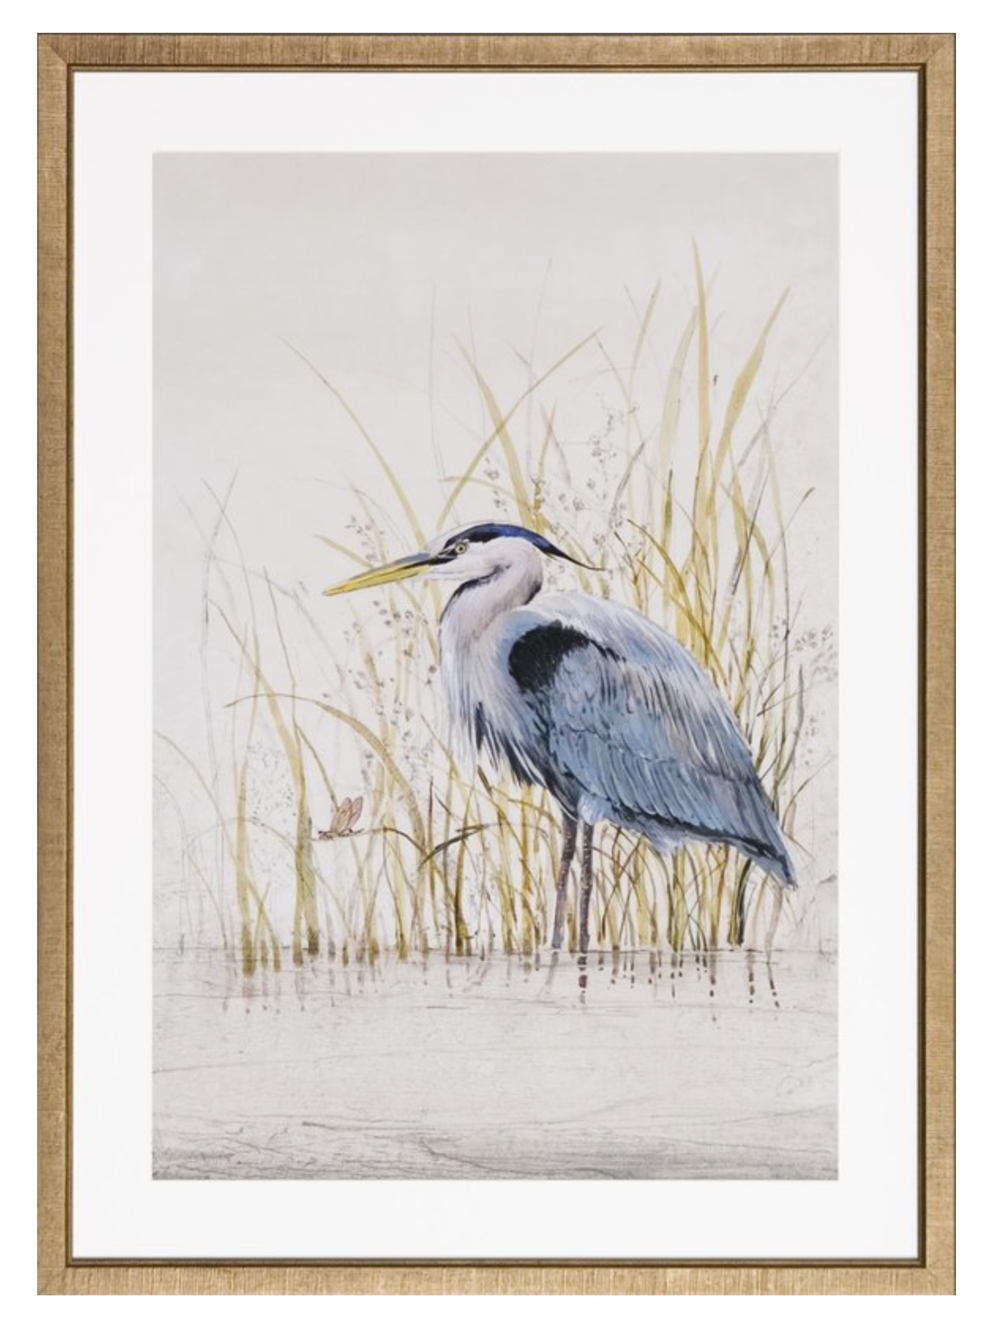 pottery barn style framed heron print for less